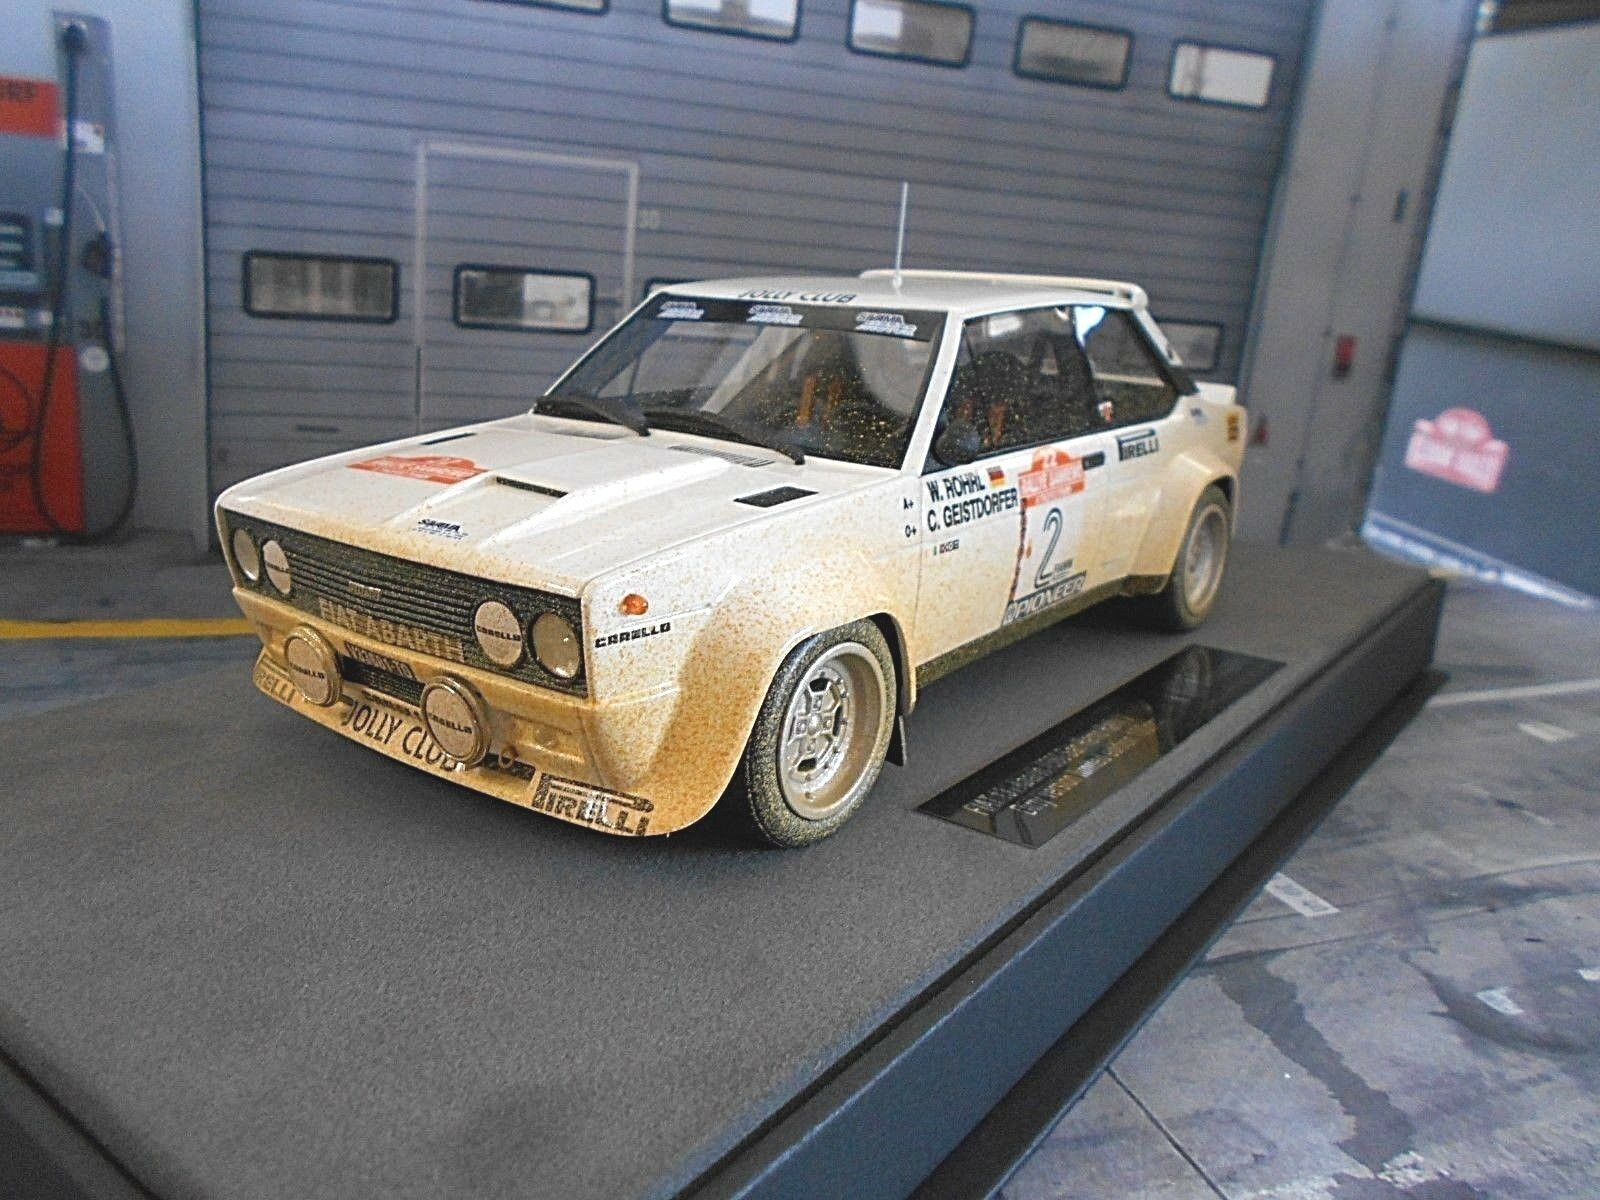 FIAT 131 Abarth Rallye San Remo 1980 Winner Röhrl DIRTY Ver Top Marques 1 18